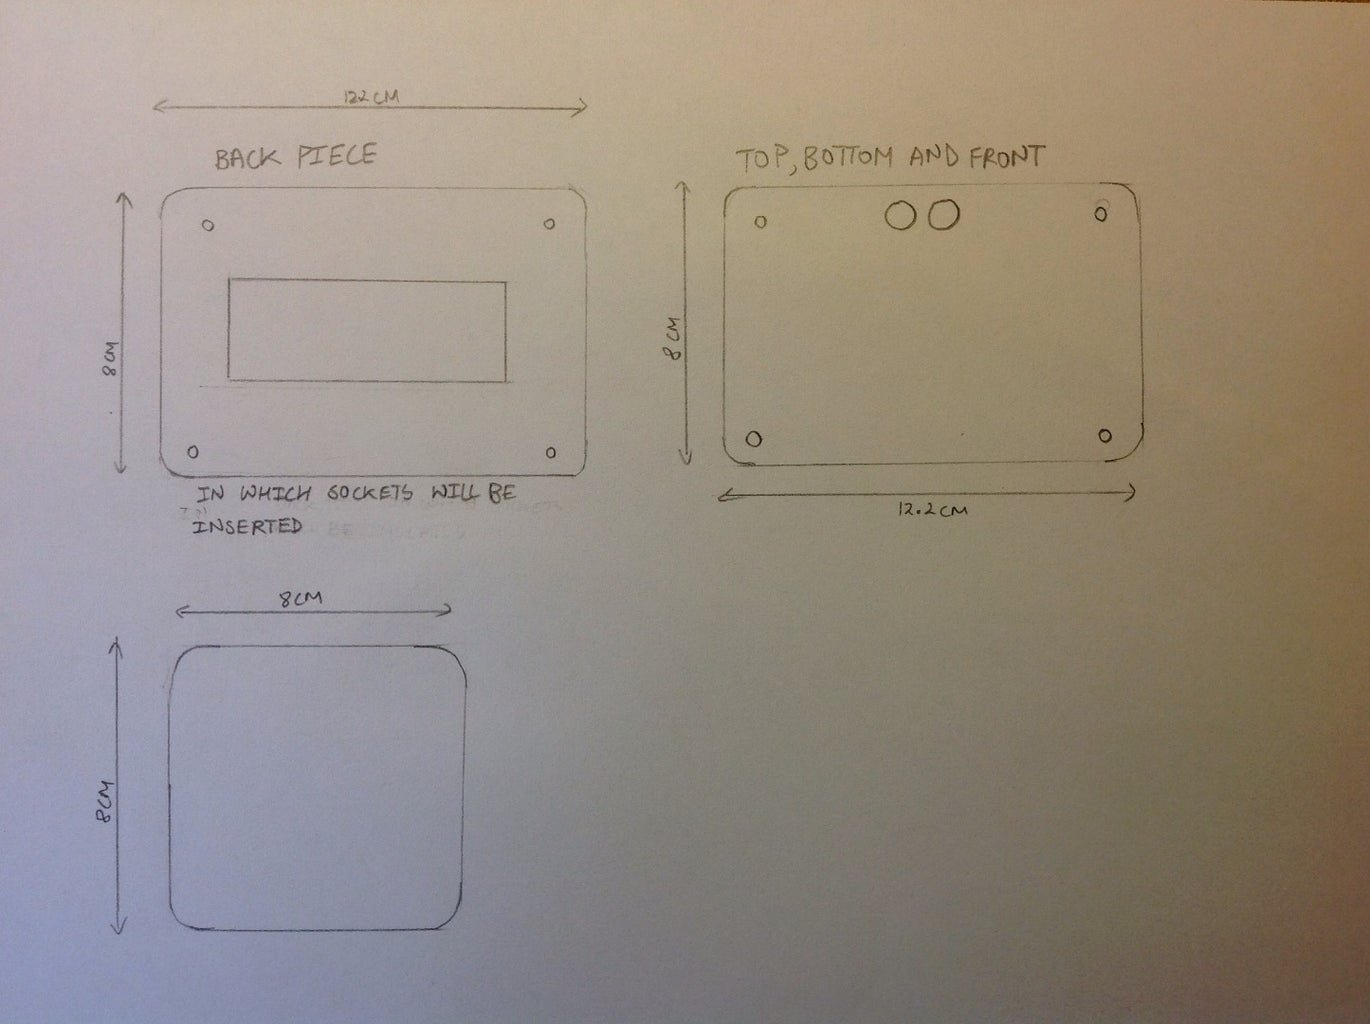 My Concept, Design and Why I Made It